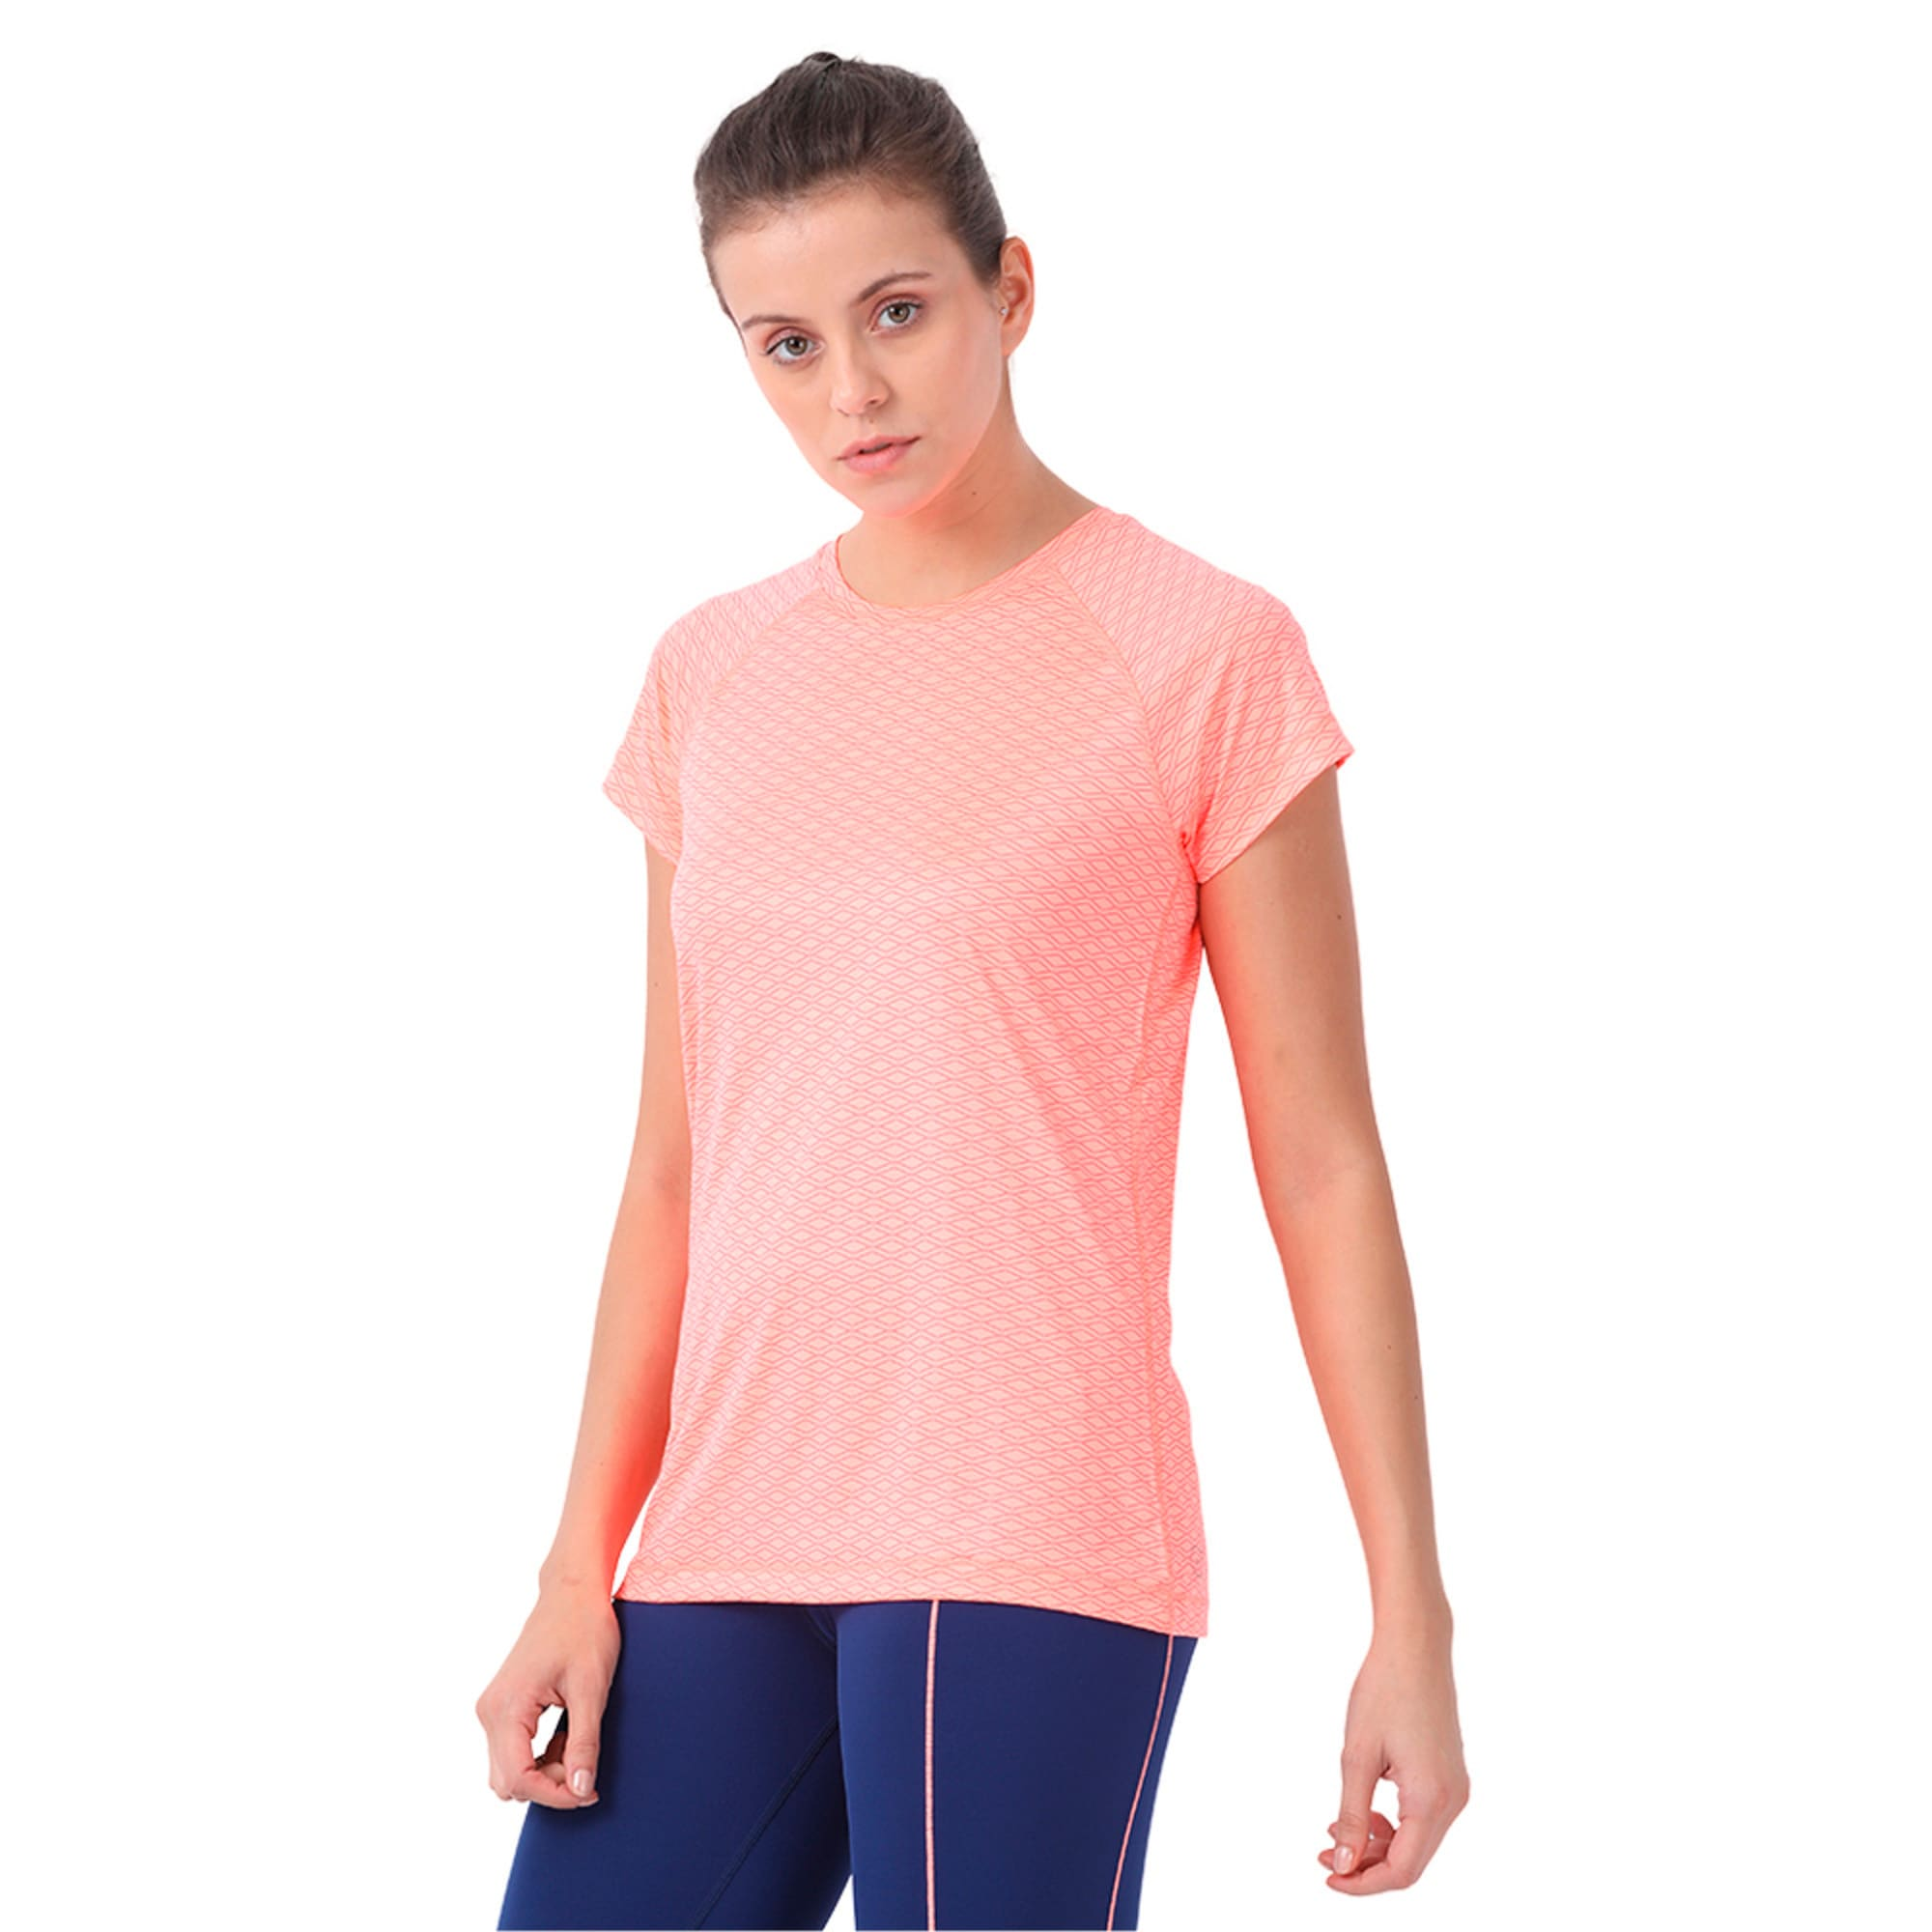 Thumbnail 2 of Graphic S S Tee W, Nrgy Peach-AOP, medium-IND